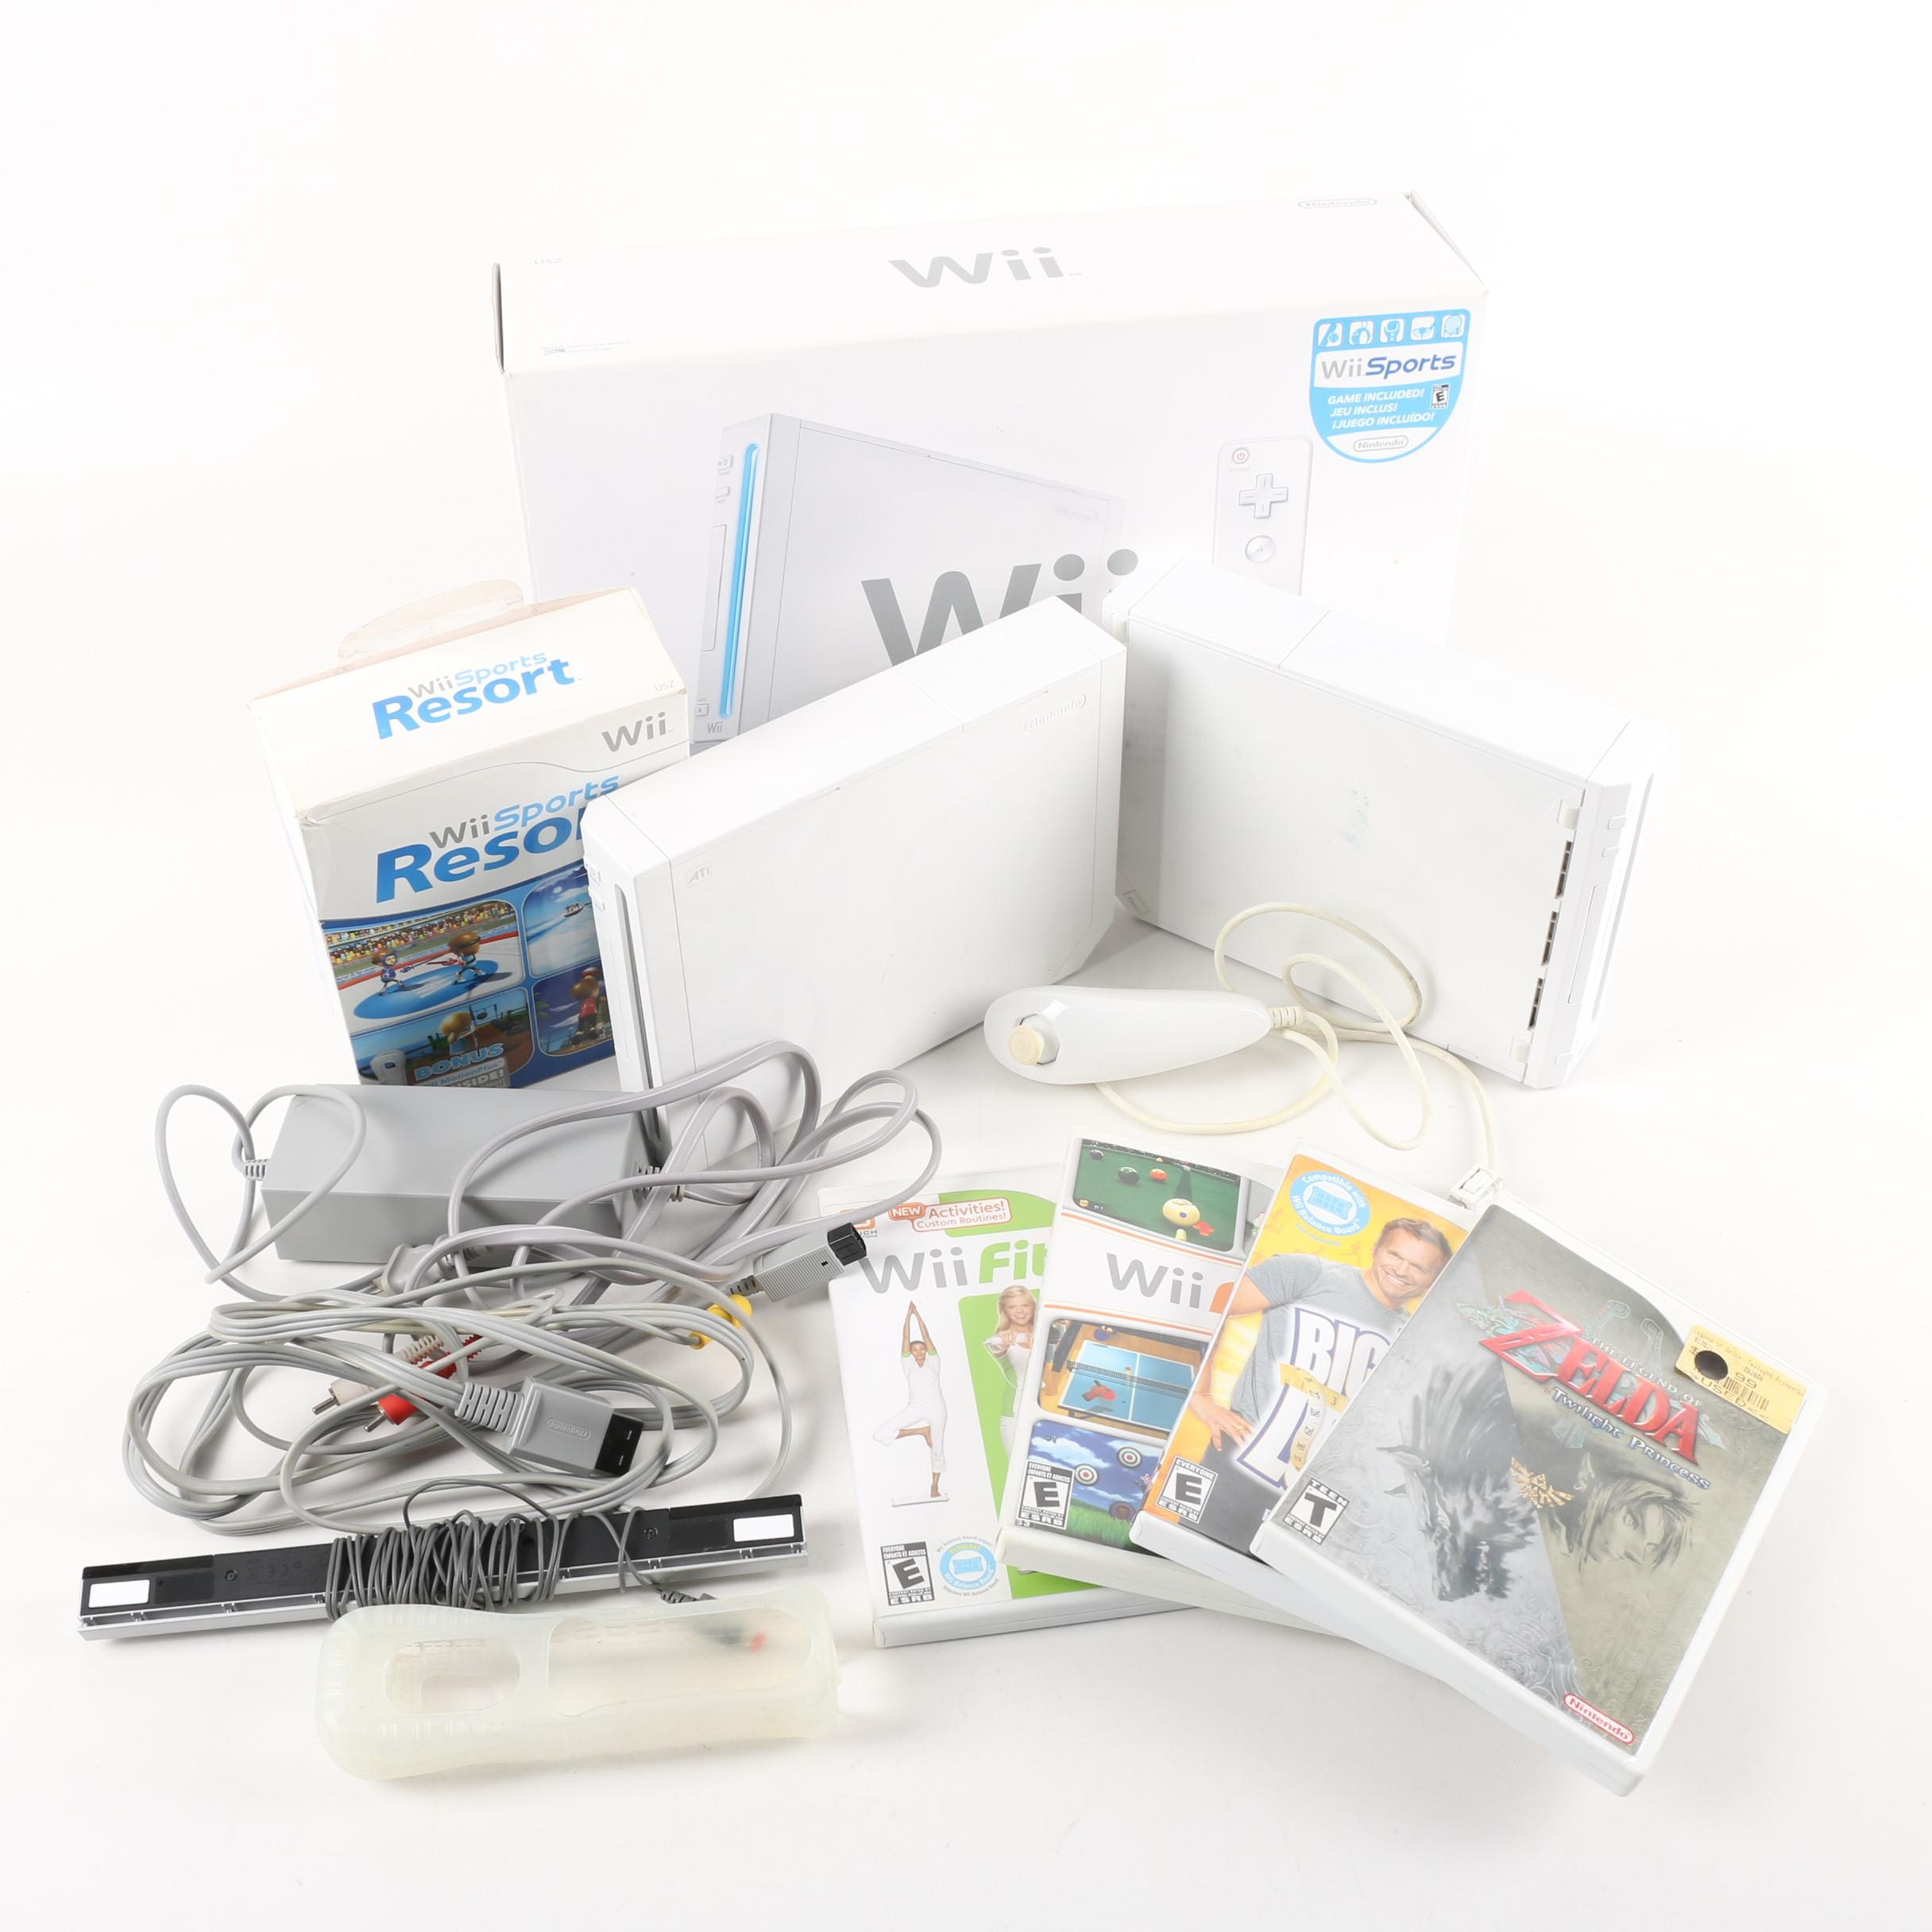 Nintendo Wii Video Game Consoles with Games and Accessories